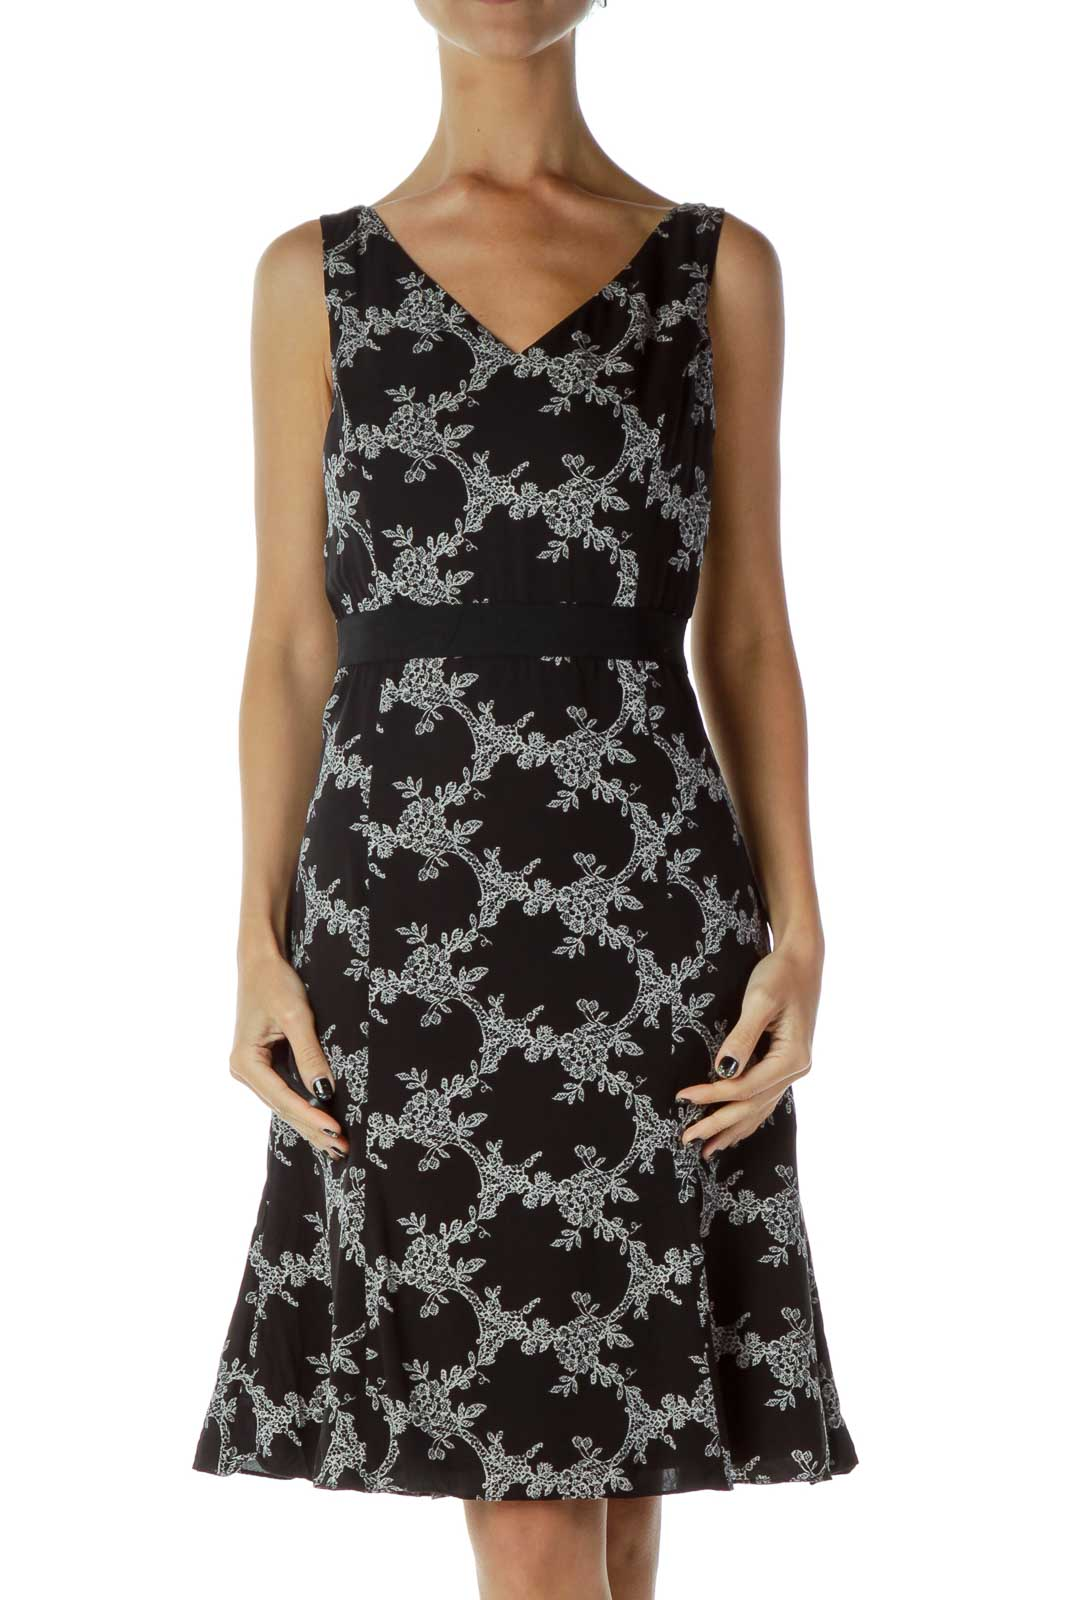 Black White Floral Work Dress